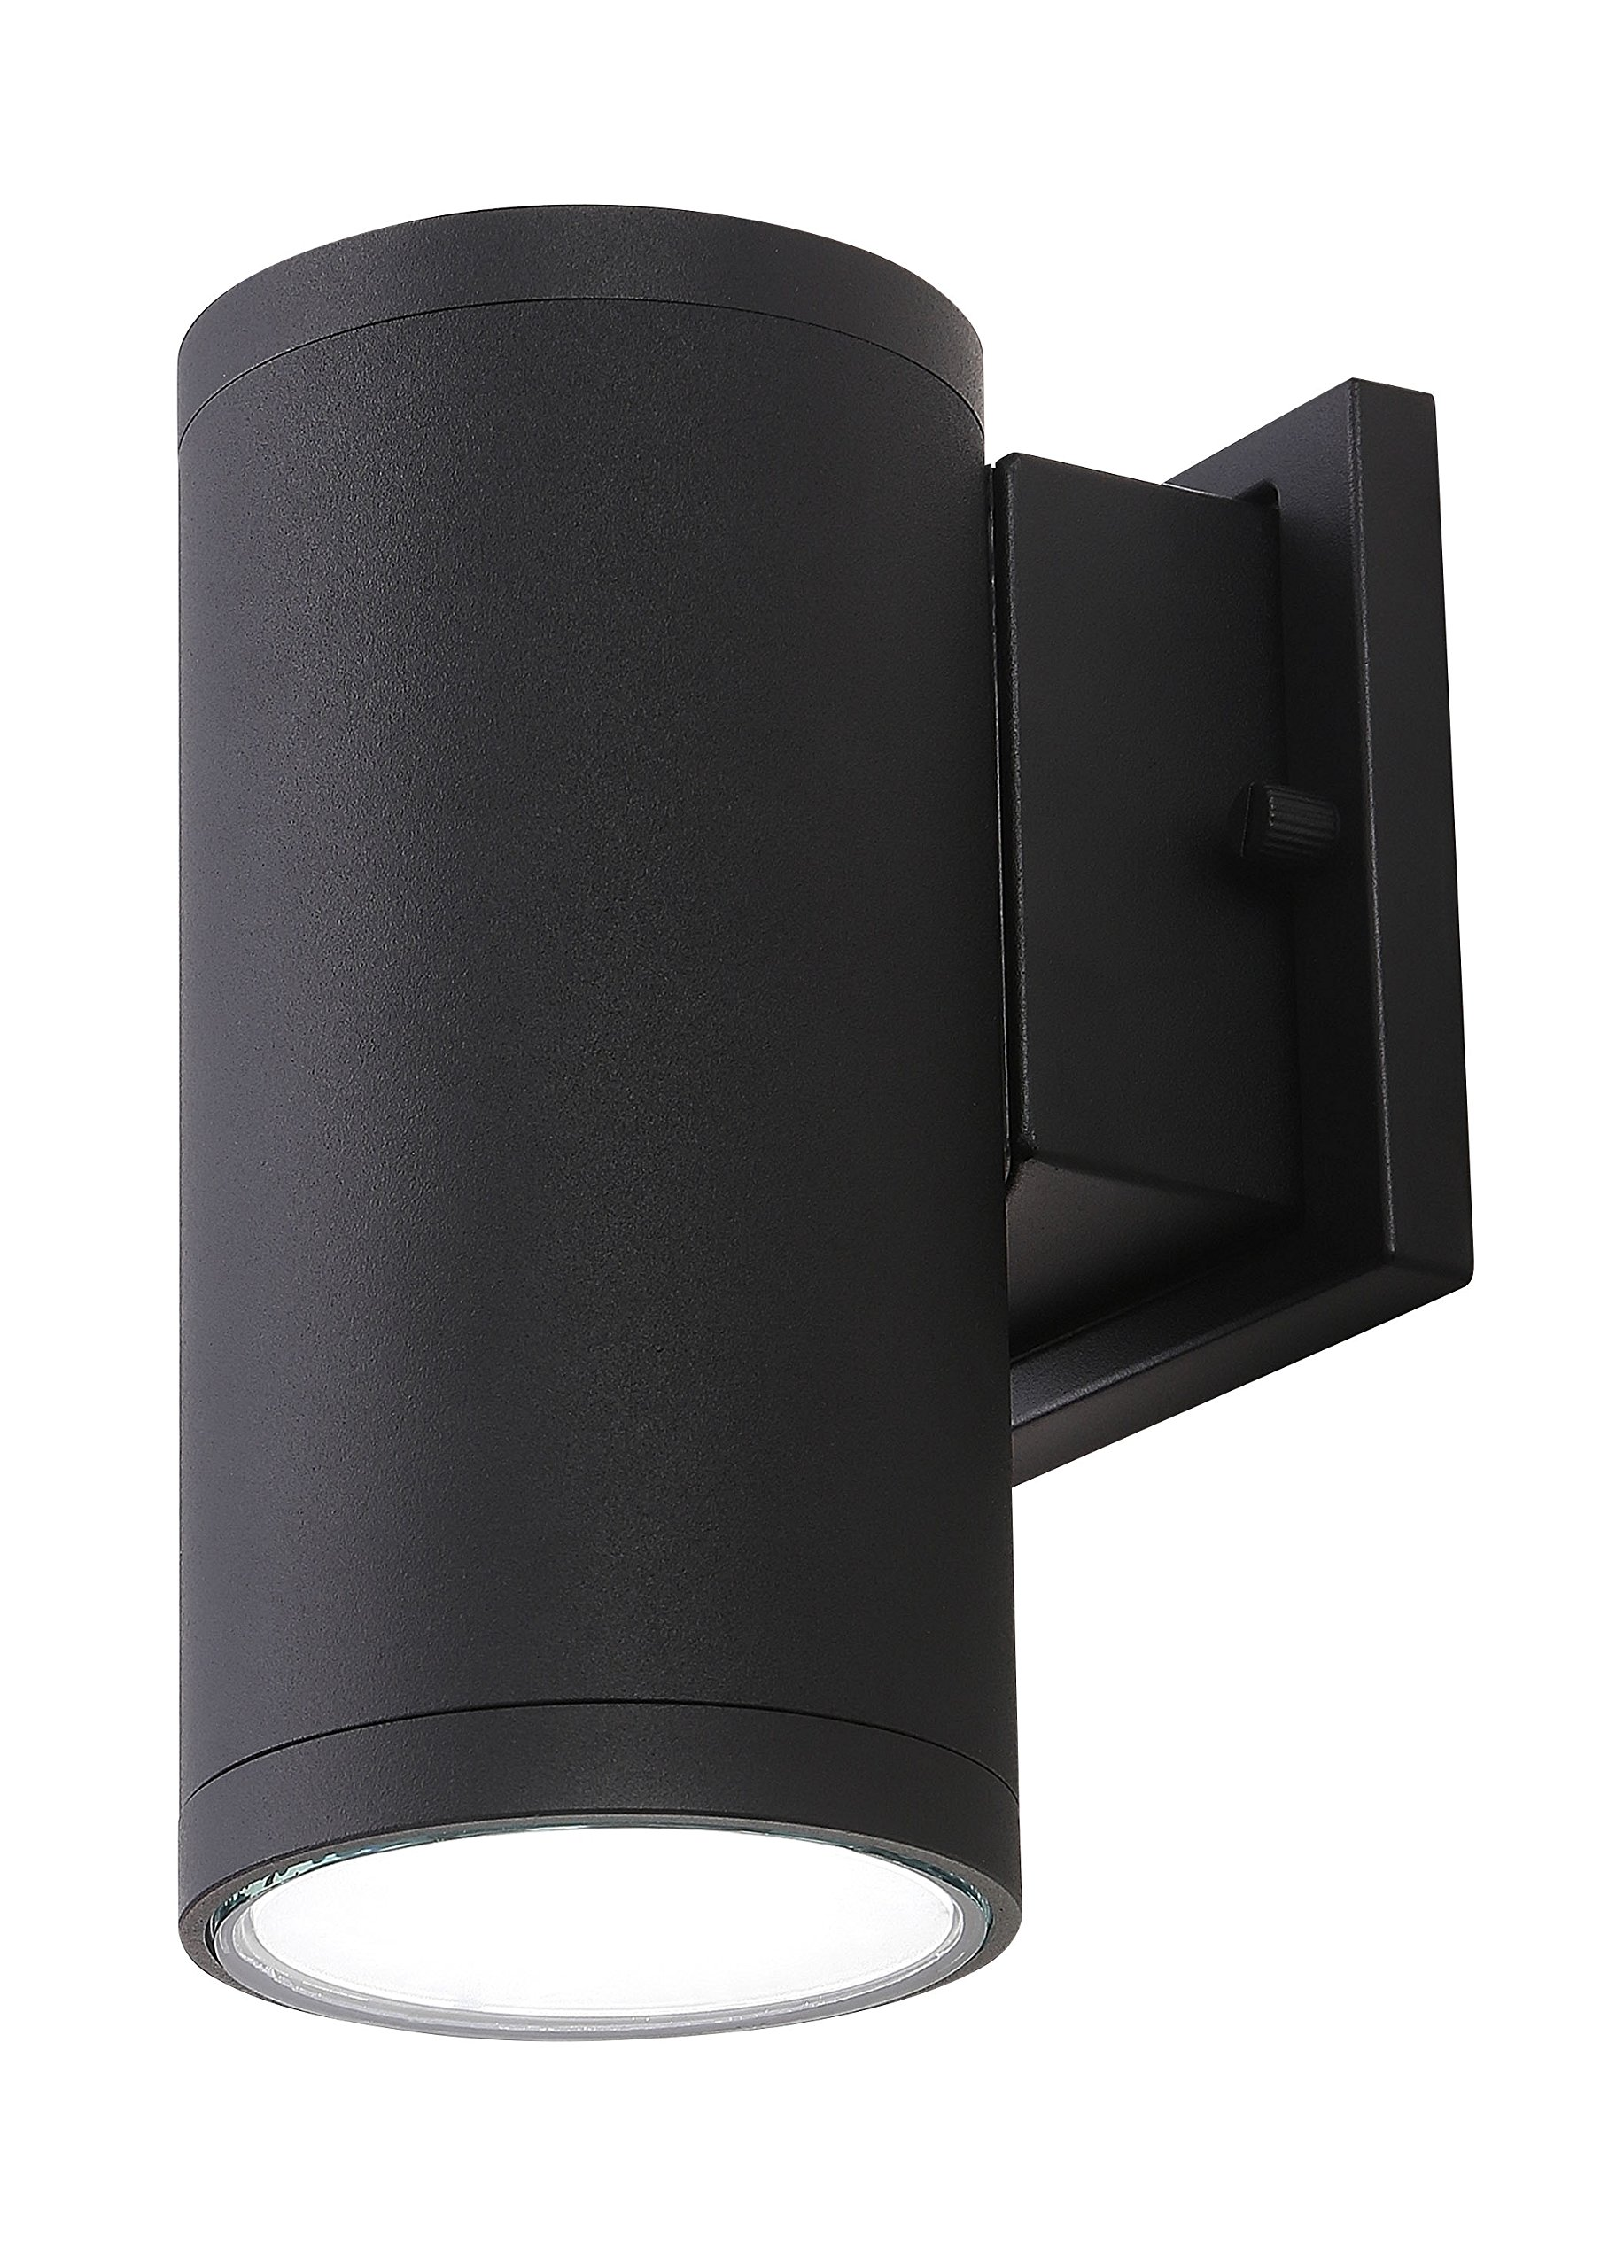 "Cloudy Bay LED Outdoor Wall Light Fixture,13W Modern Exterior Outside Light,5000K Daylight White Cylinder Porch Light,Black - 13W integrated LED equals to 100W incandescent bulb and saves 85% electricity 8"" high,4"" wide cylinder wall light.Up or down directional lighting lights up house numbers Need no bulbs to replace with 5 years warranty - patio, outdoor-lights, outdoor-decor - 81N6s%2Bs tpL -"